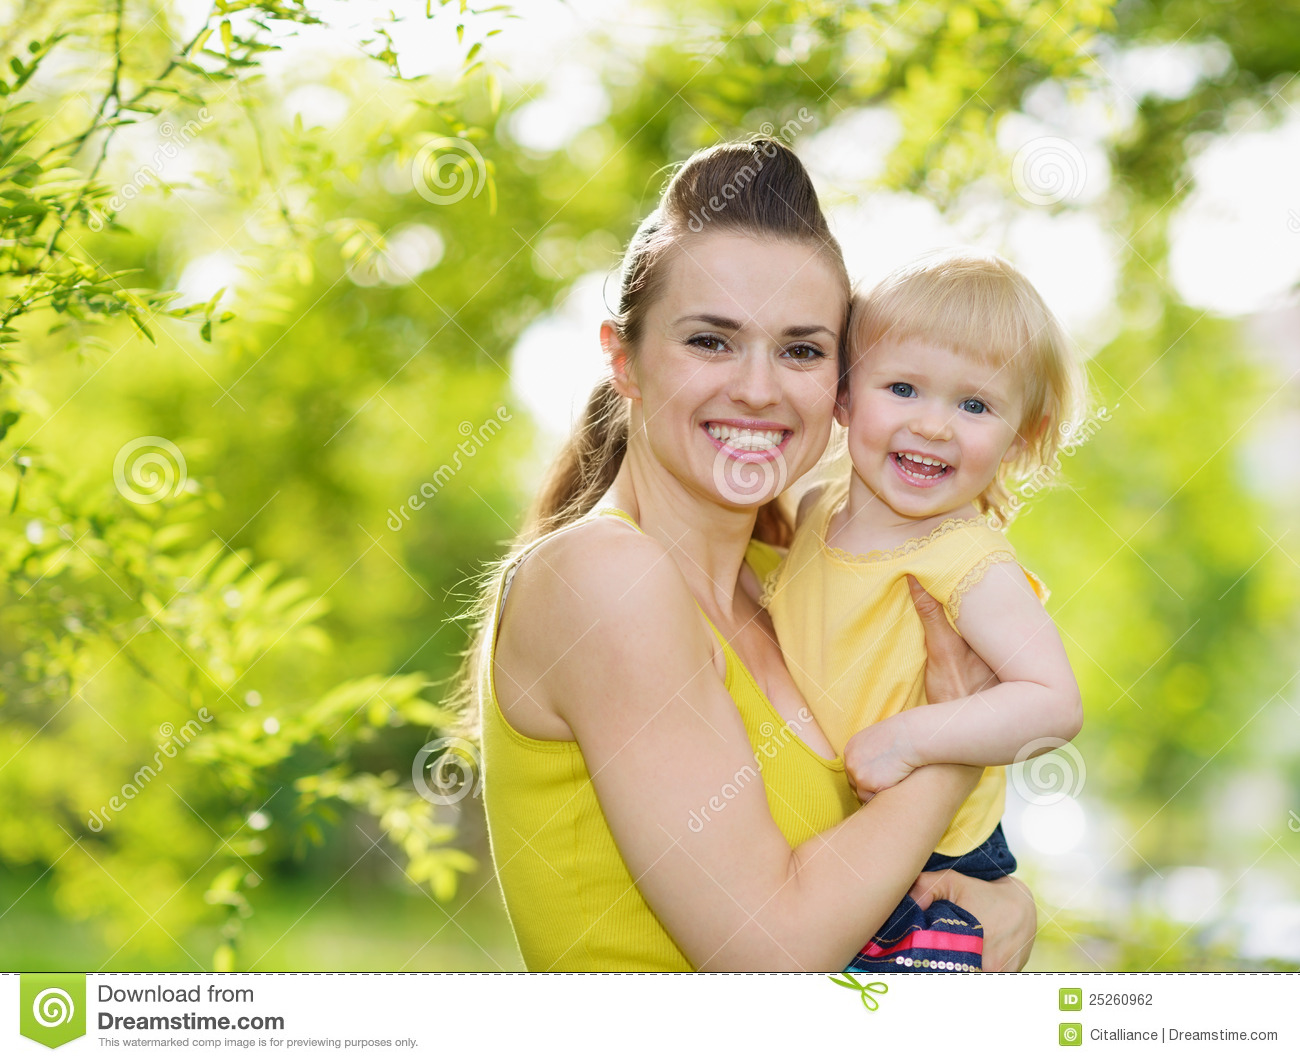 938086eb4 Portrait Of Smiling Mother And Baby Girl Outdoors Stock Photo ...